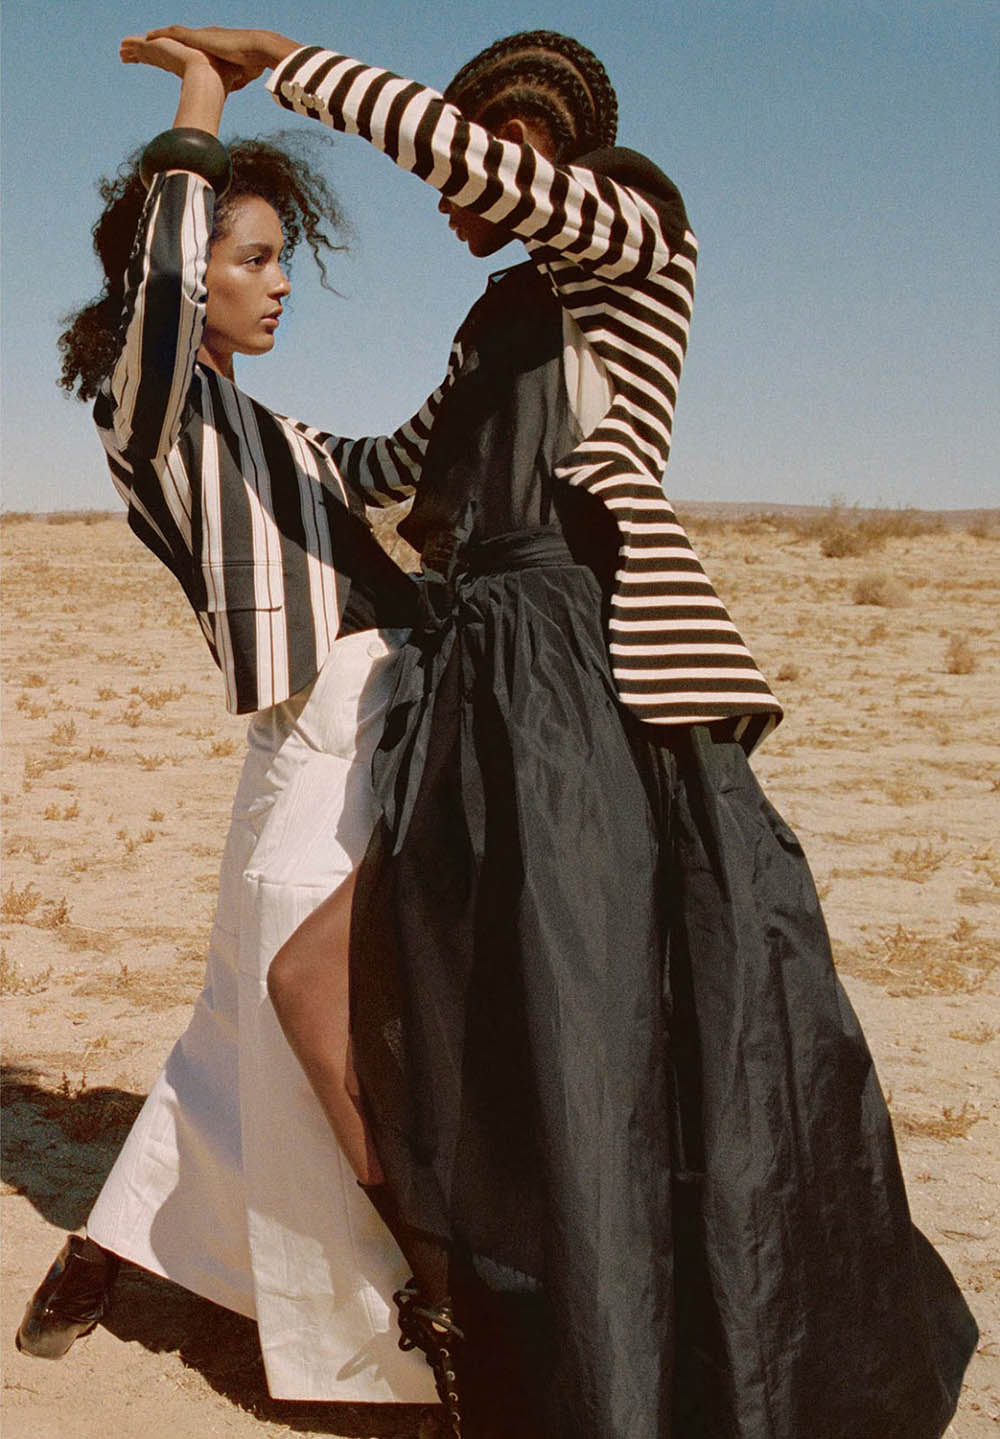 Elibeidy Dani and Luisana Gonzalez by Yelena Yemchuk for Porter Magazine Winter Escape 2018